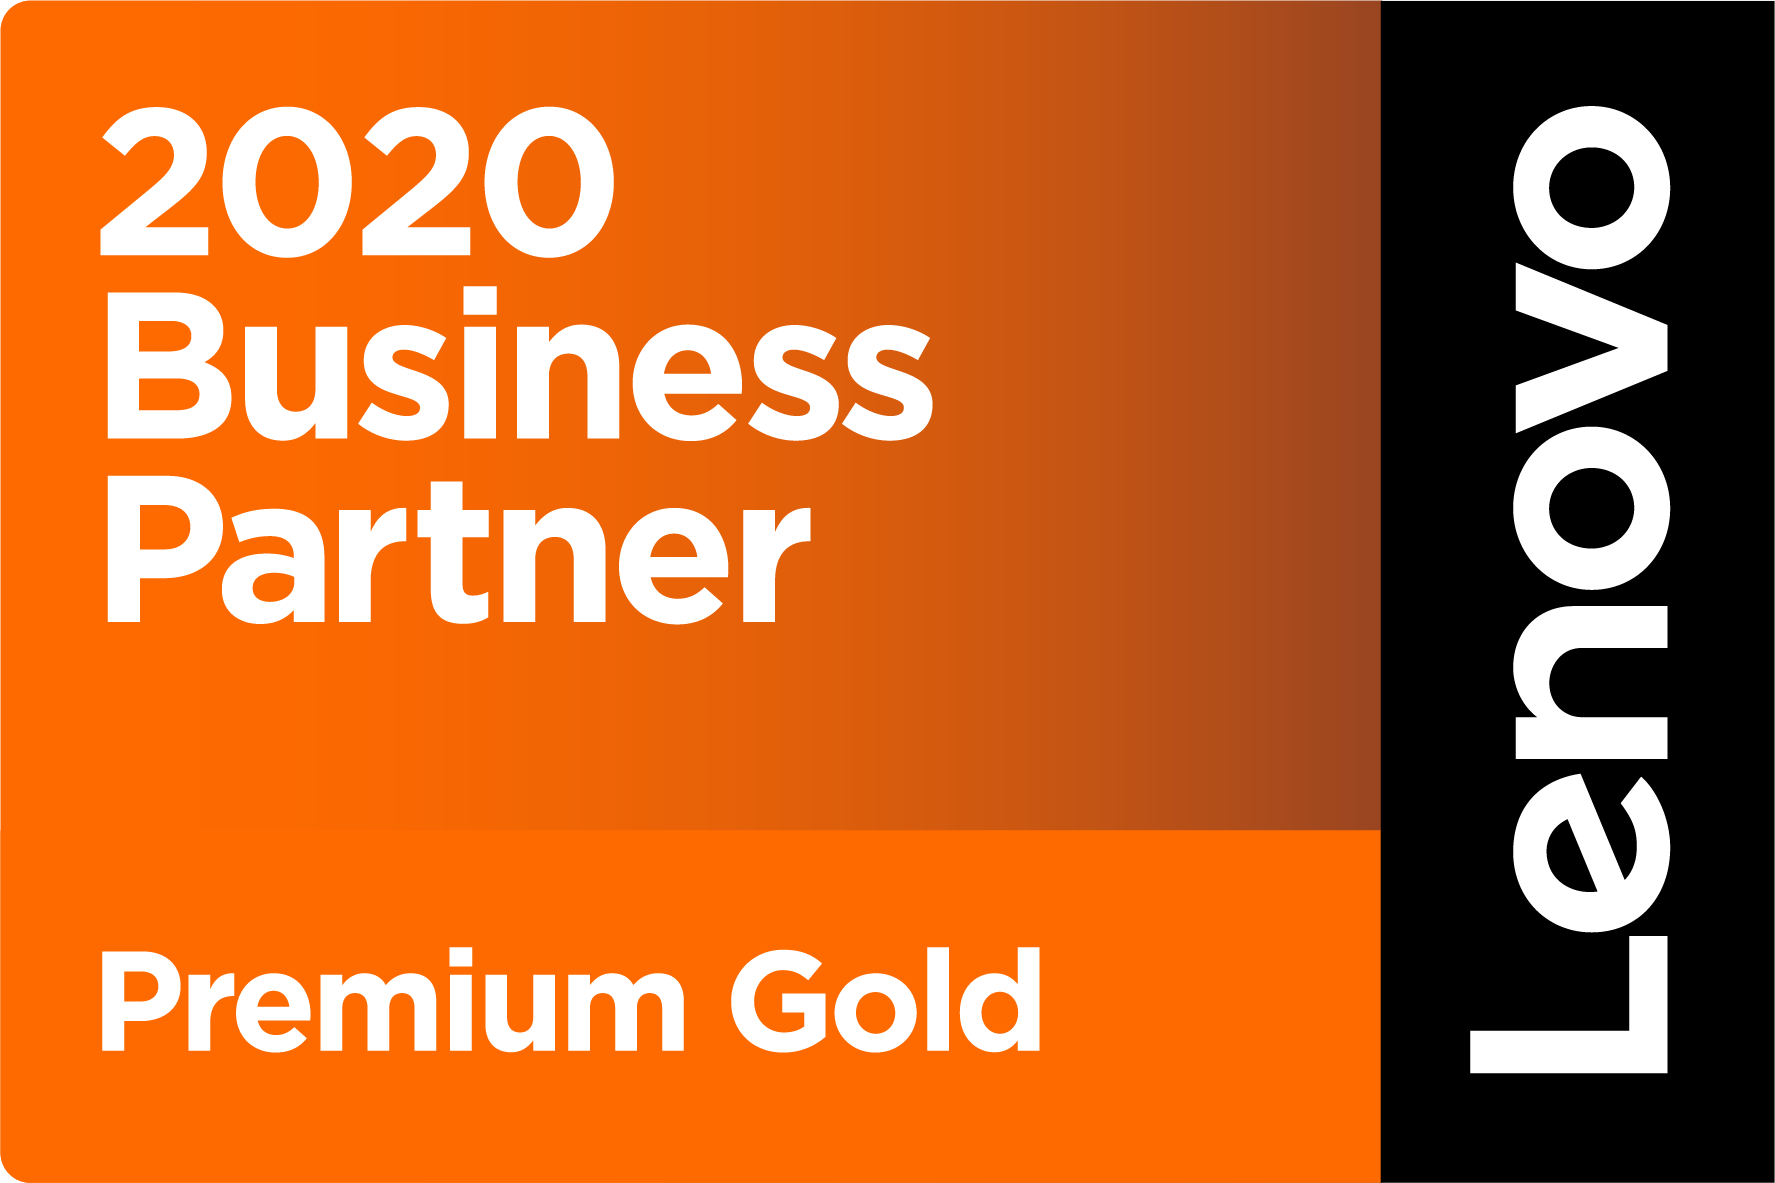 2020 Business partner Premium Gold